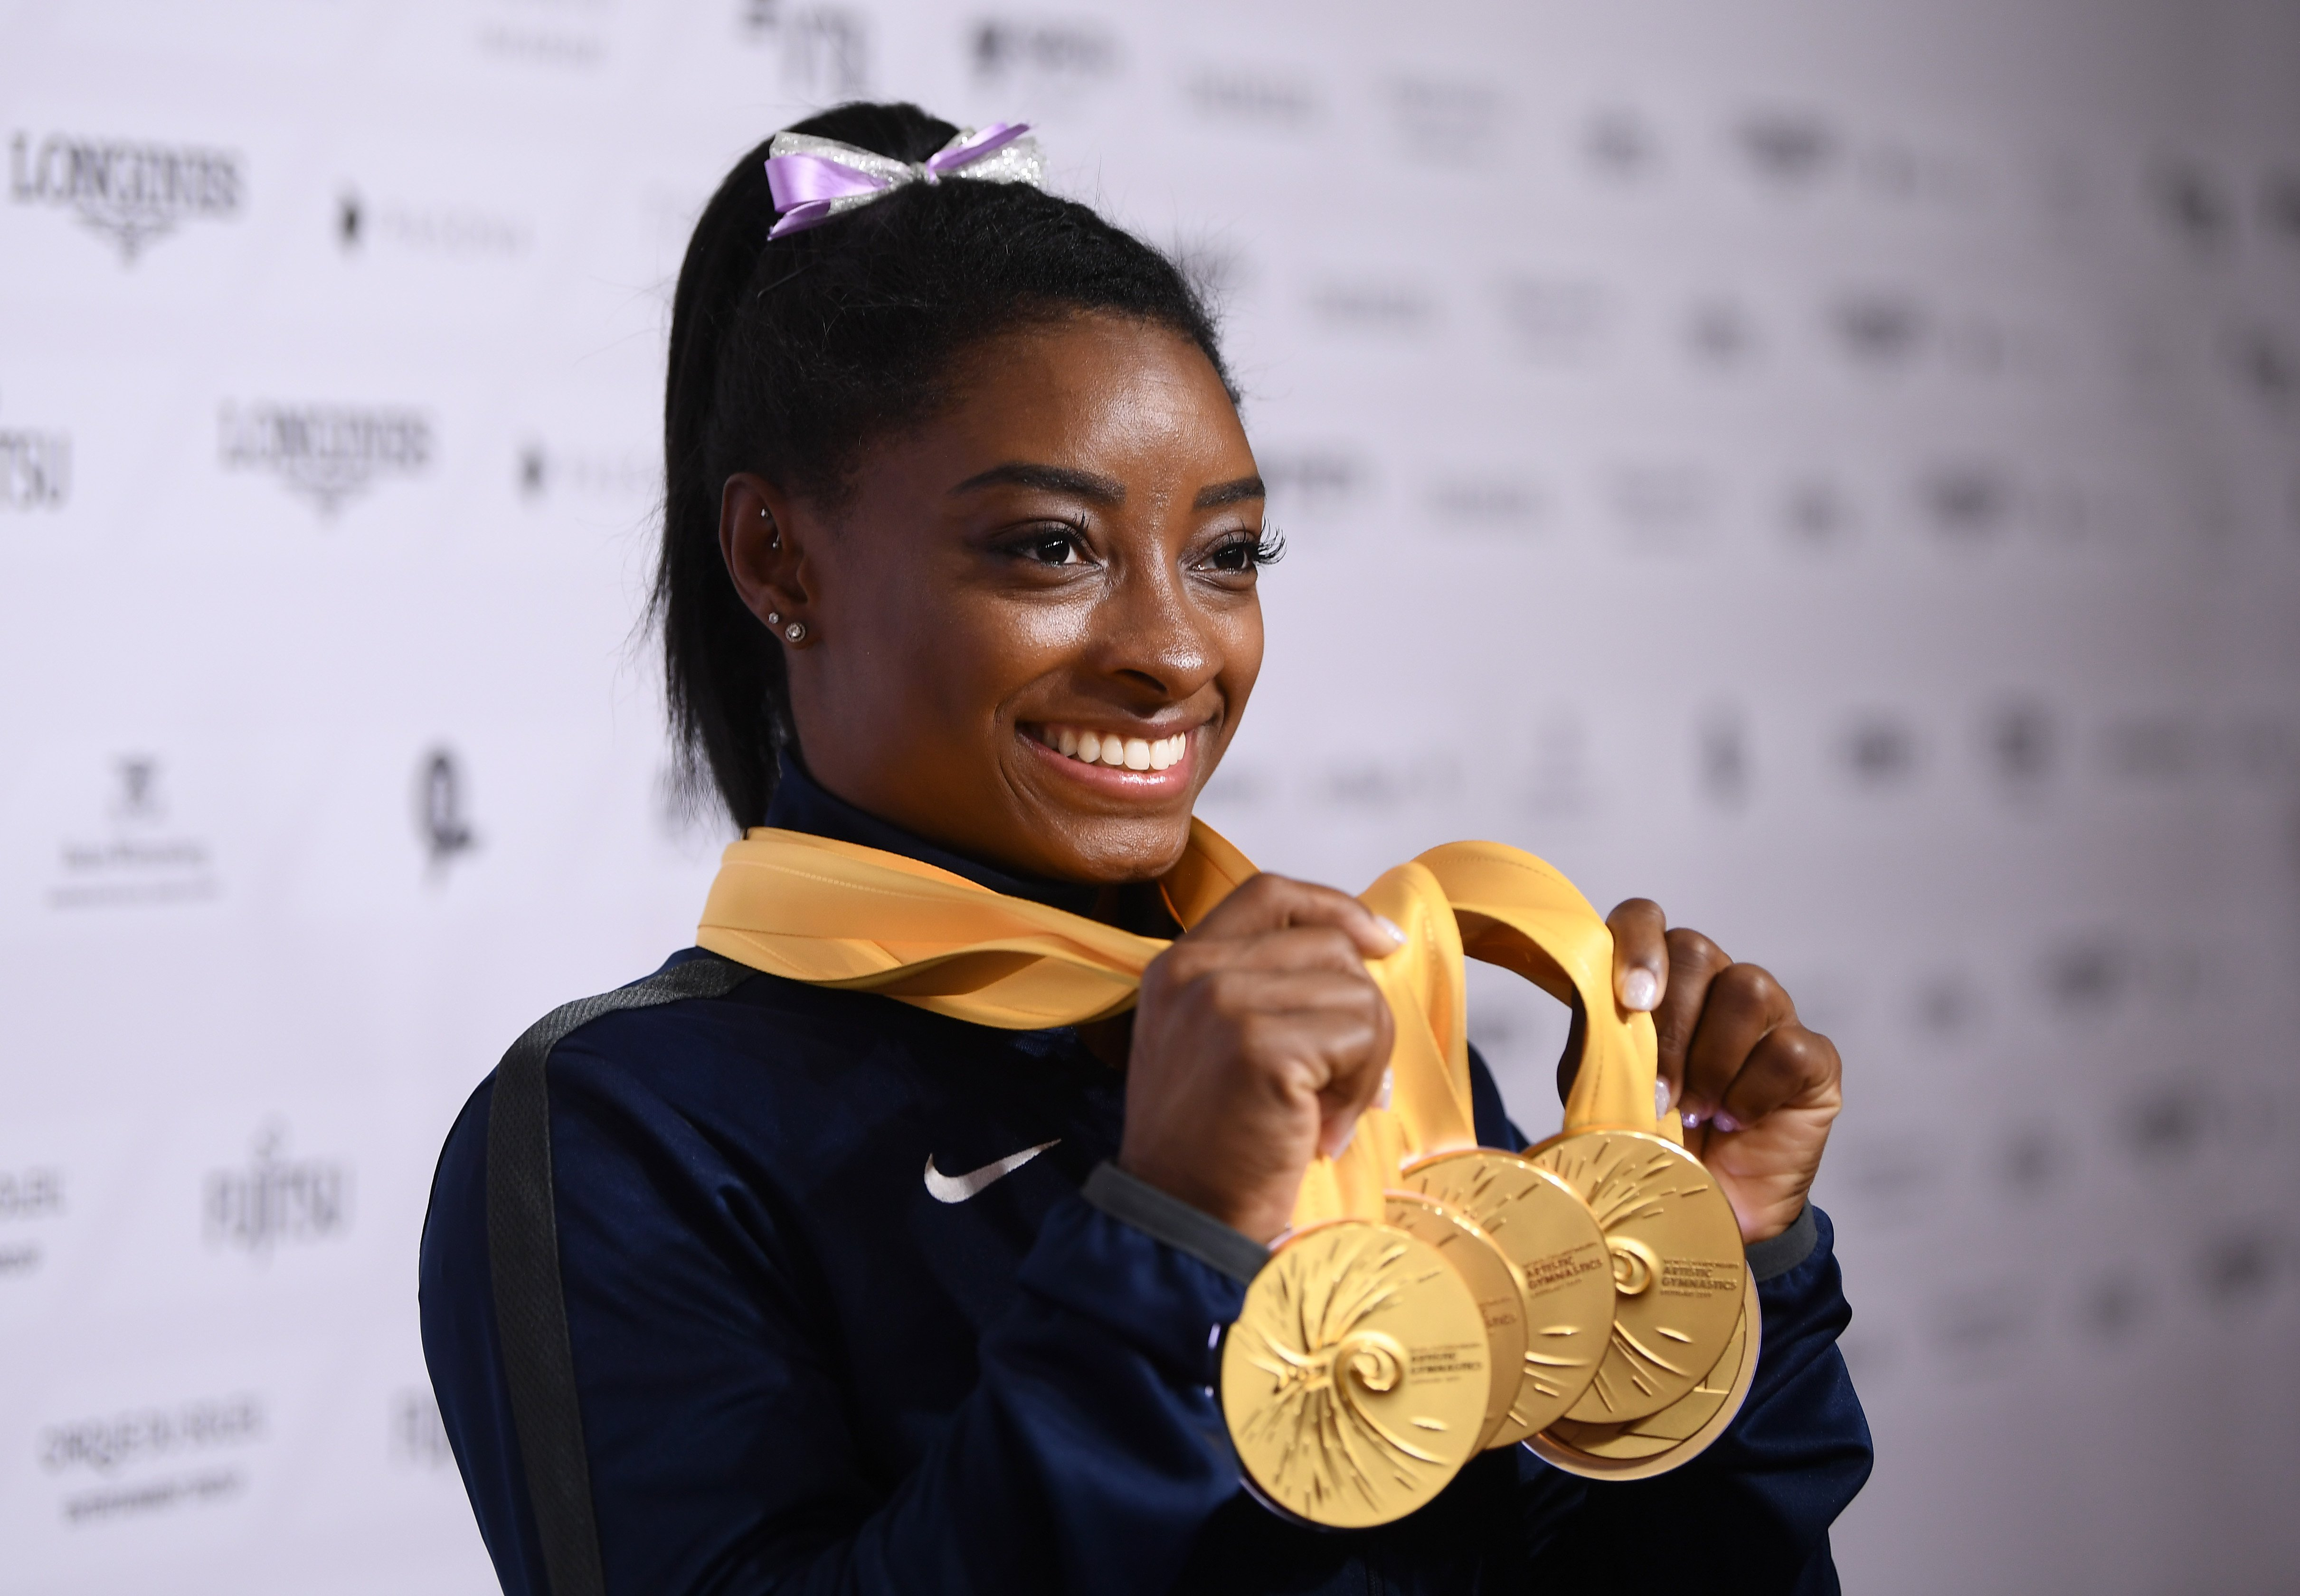 Simone Biles poses with her medals at the the FIG Artistic Gymnastics World Championships on October 13, 2019   Photo: Getty Images